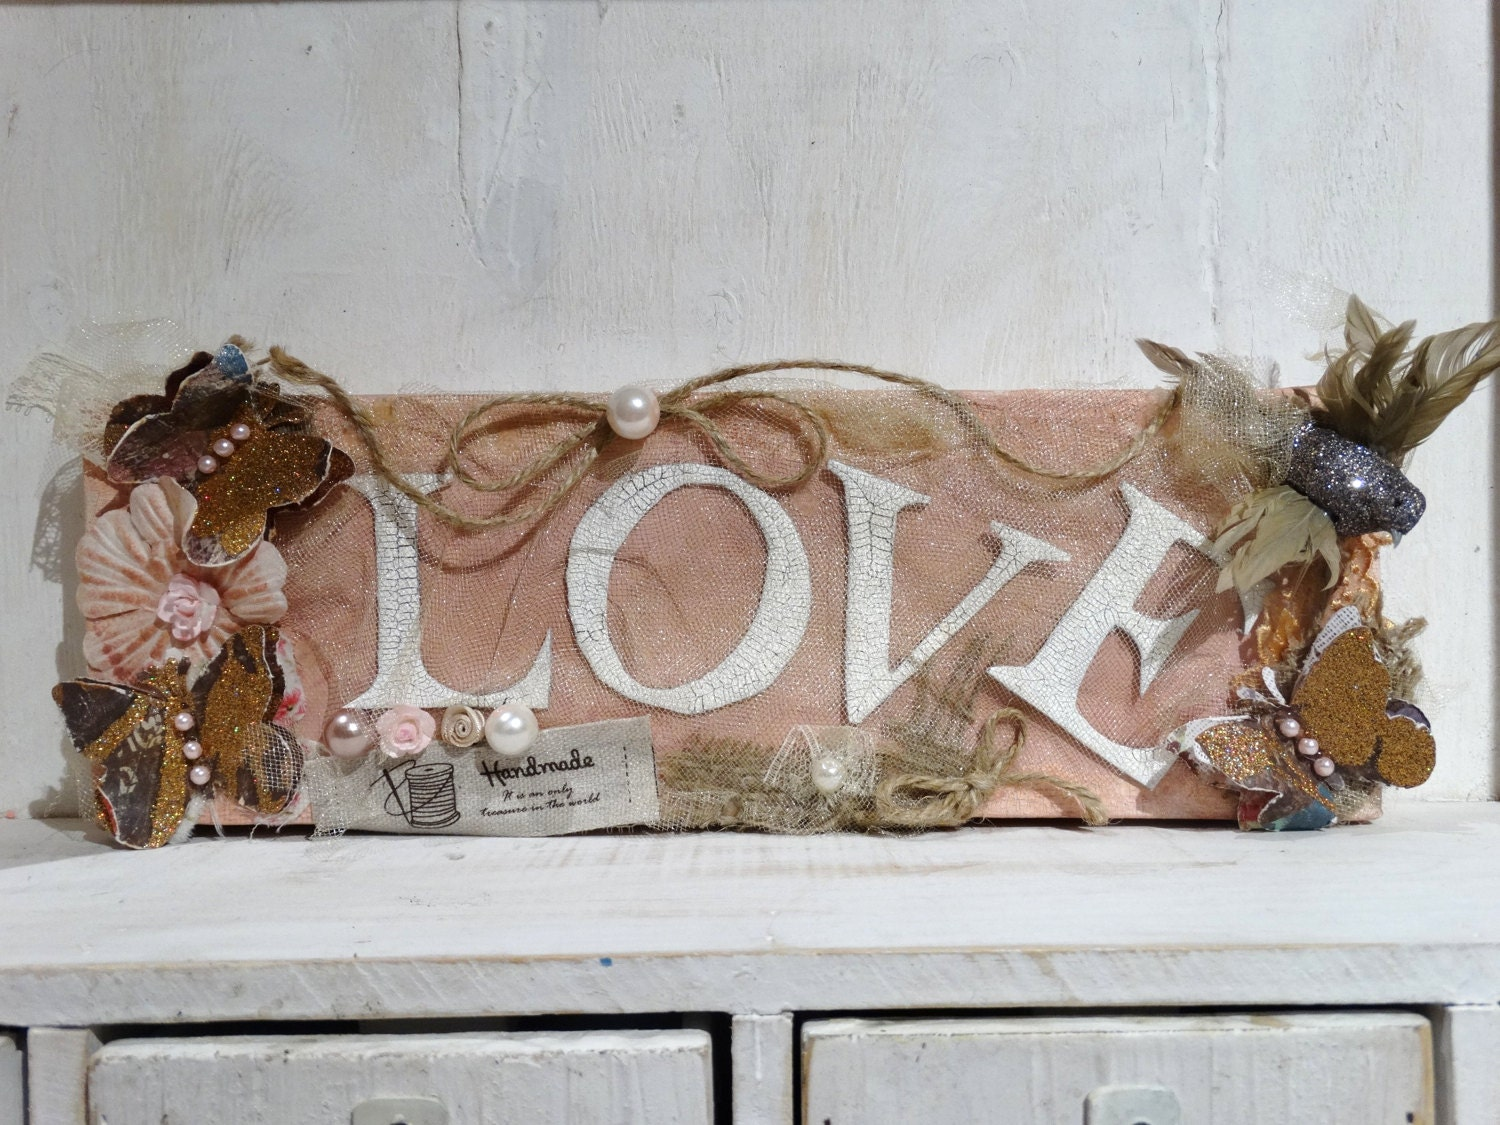 Wall Art Canvas Shabby Chic : Love decorative canvas shabby chic wall art home decor